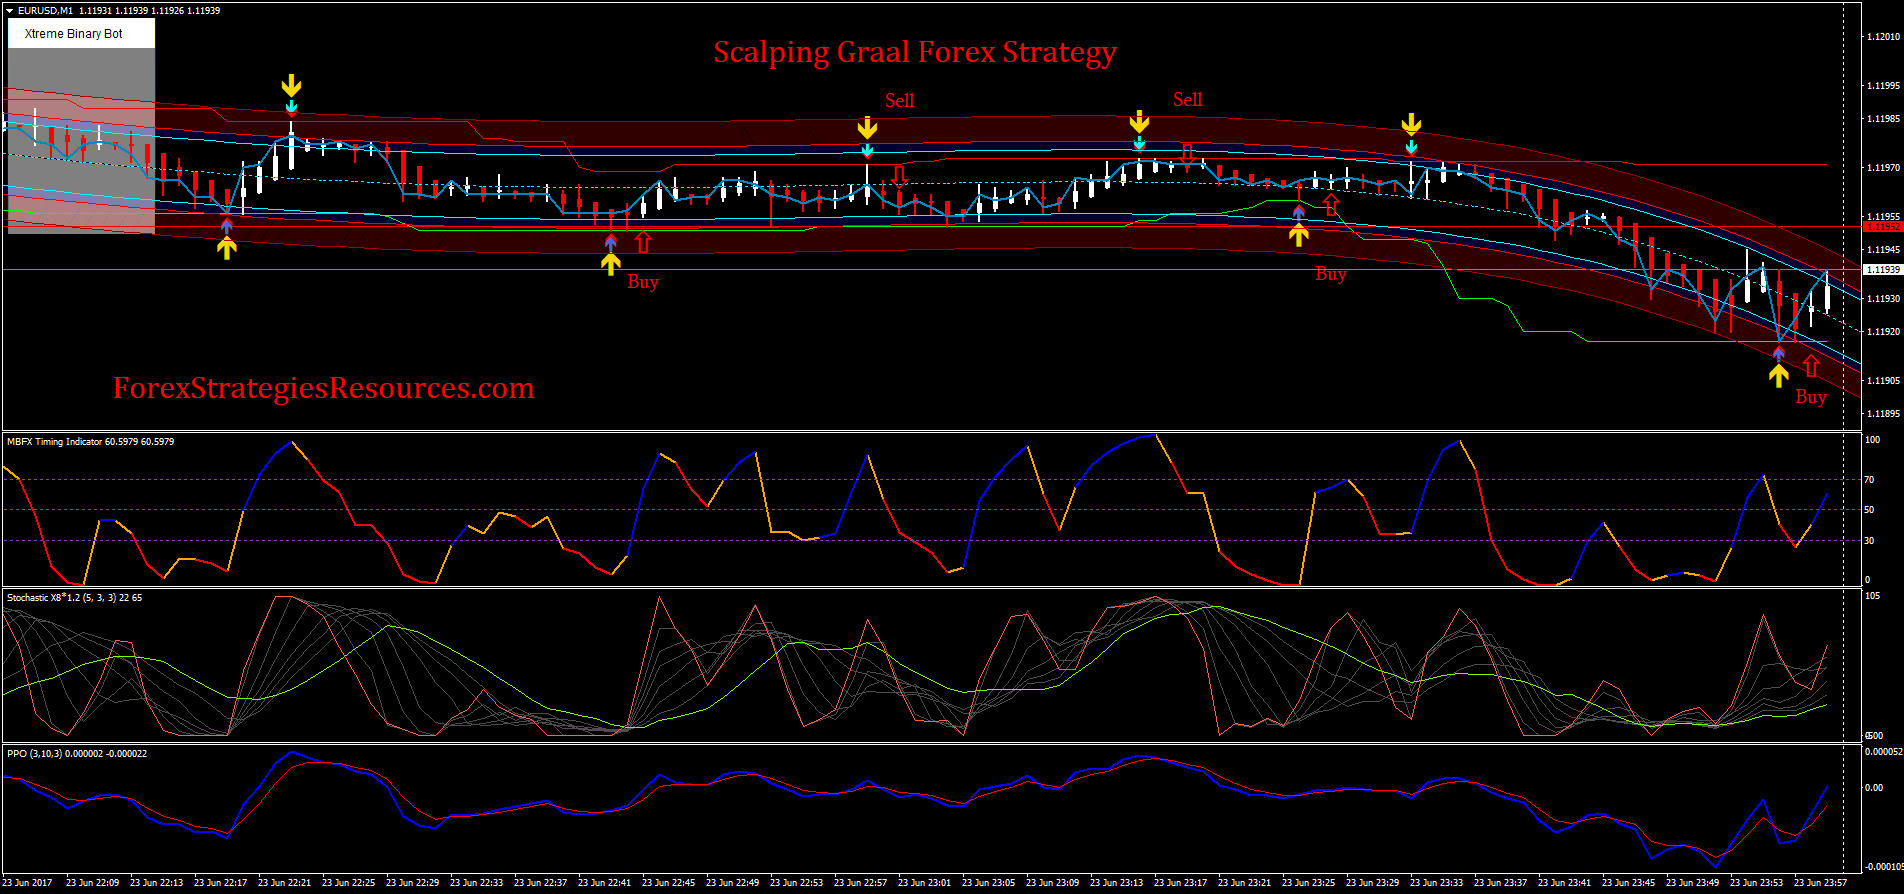 586 scalping graal forex strategy